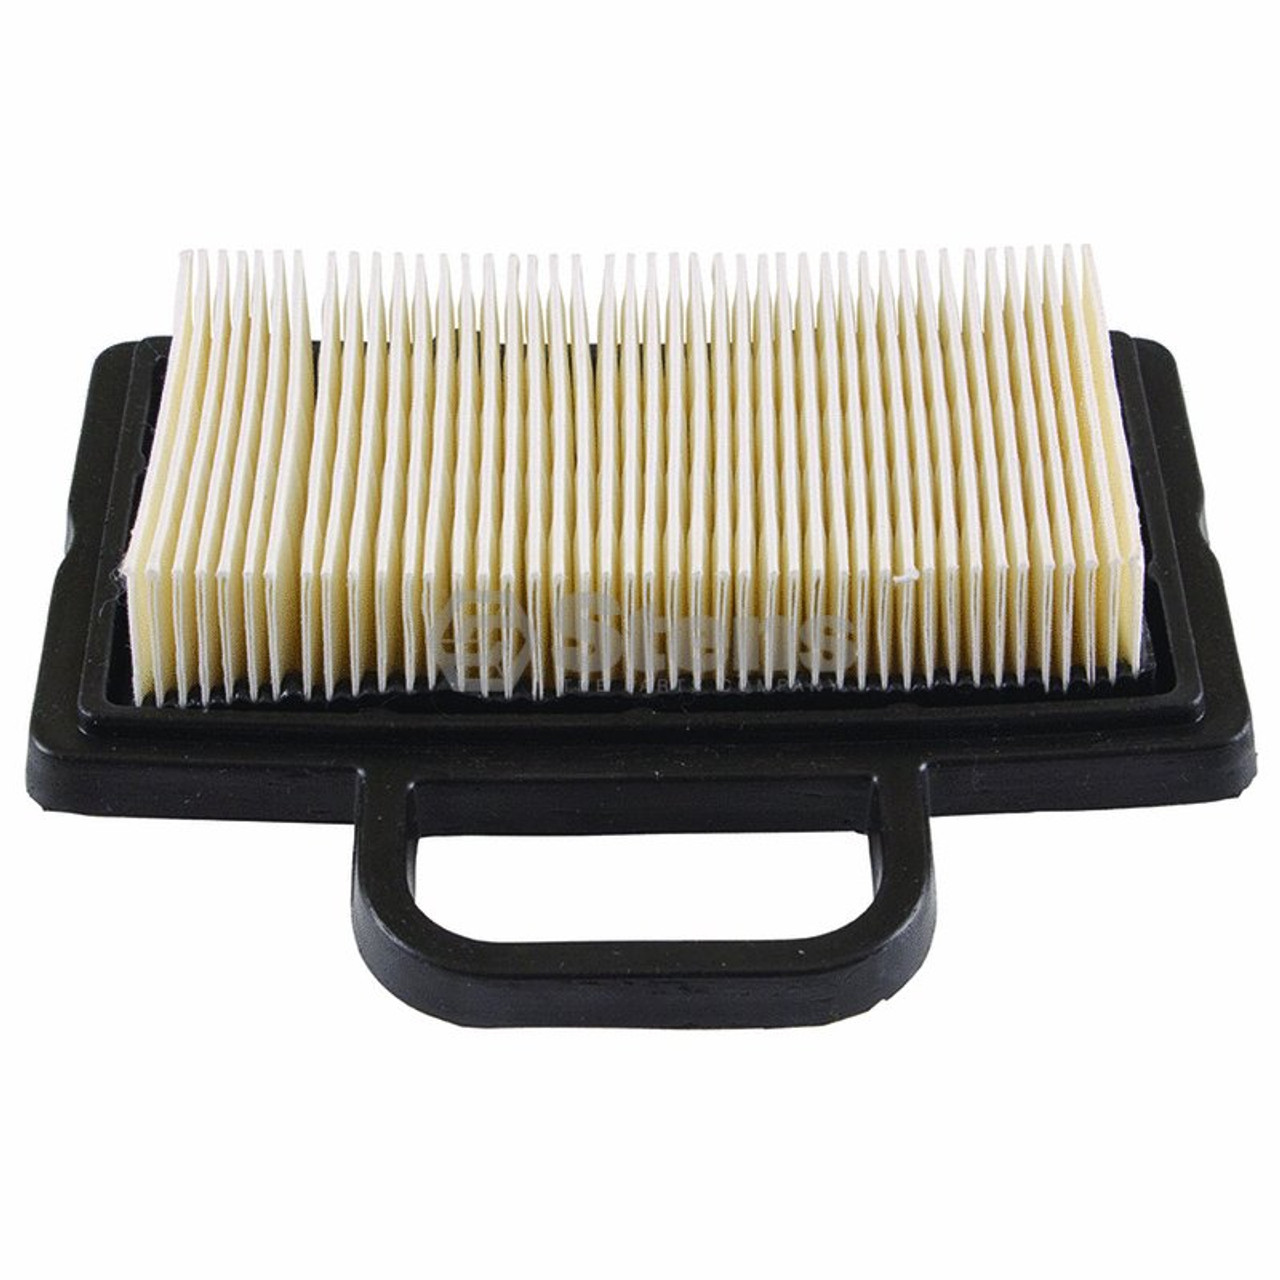 Stens 102-020 Briggs and Stratton 491384 Air Filter